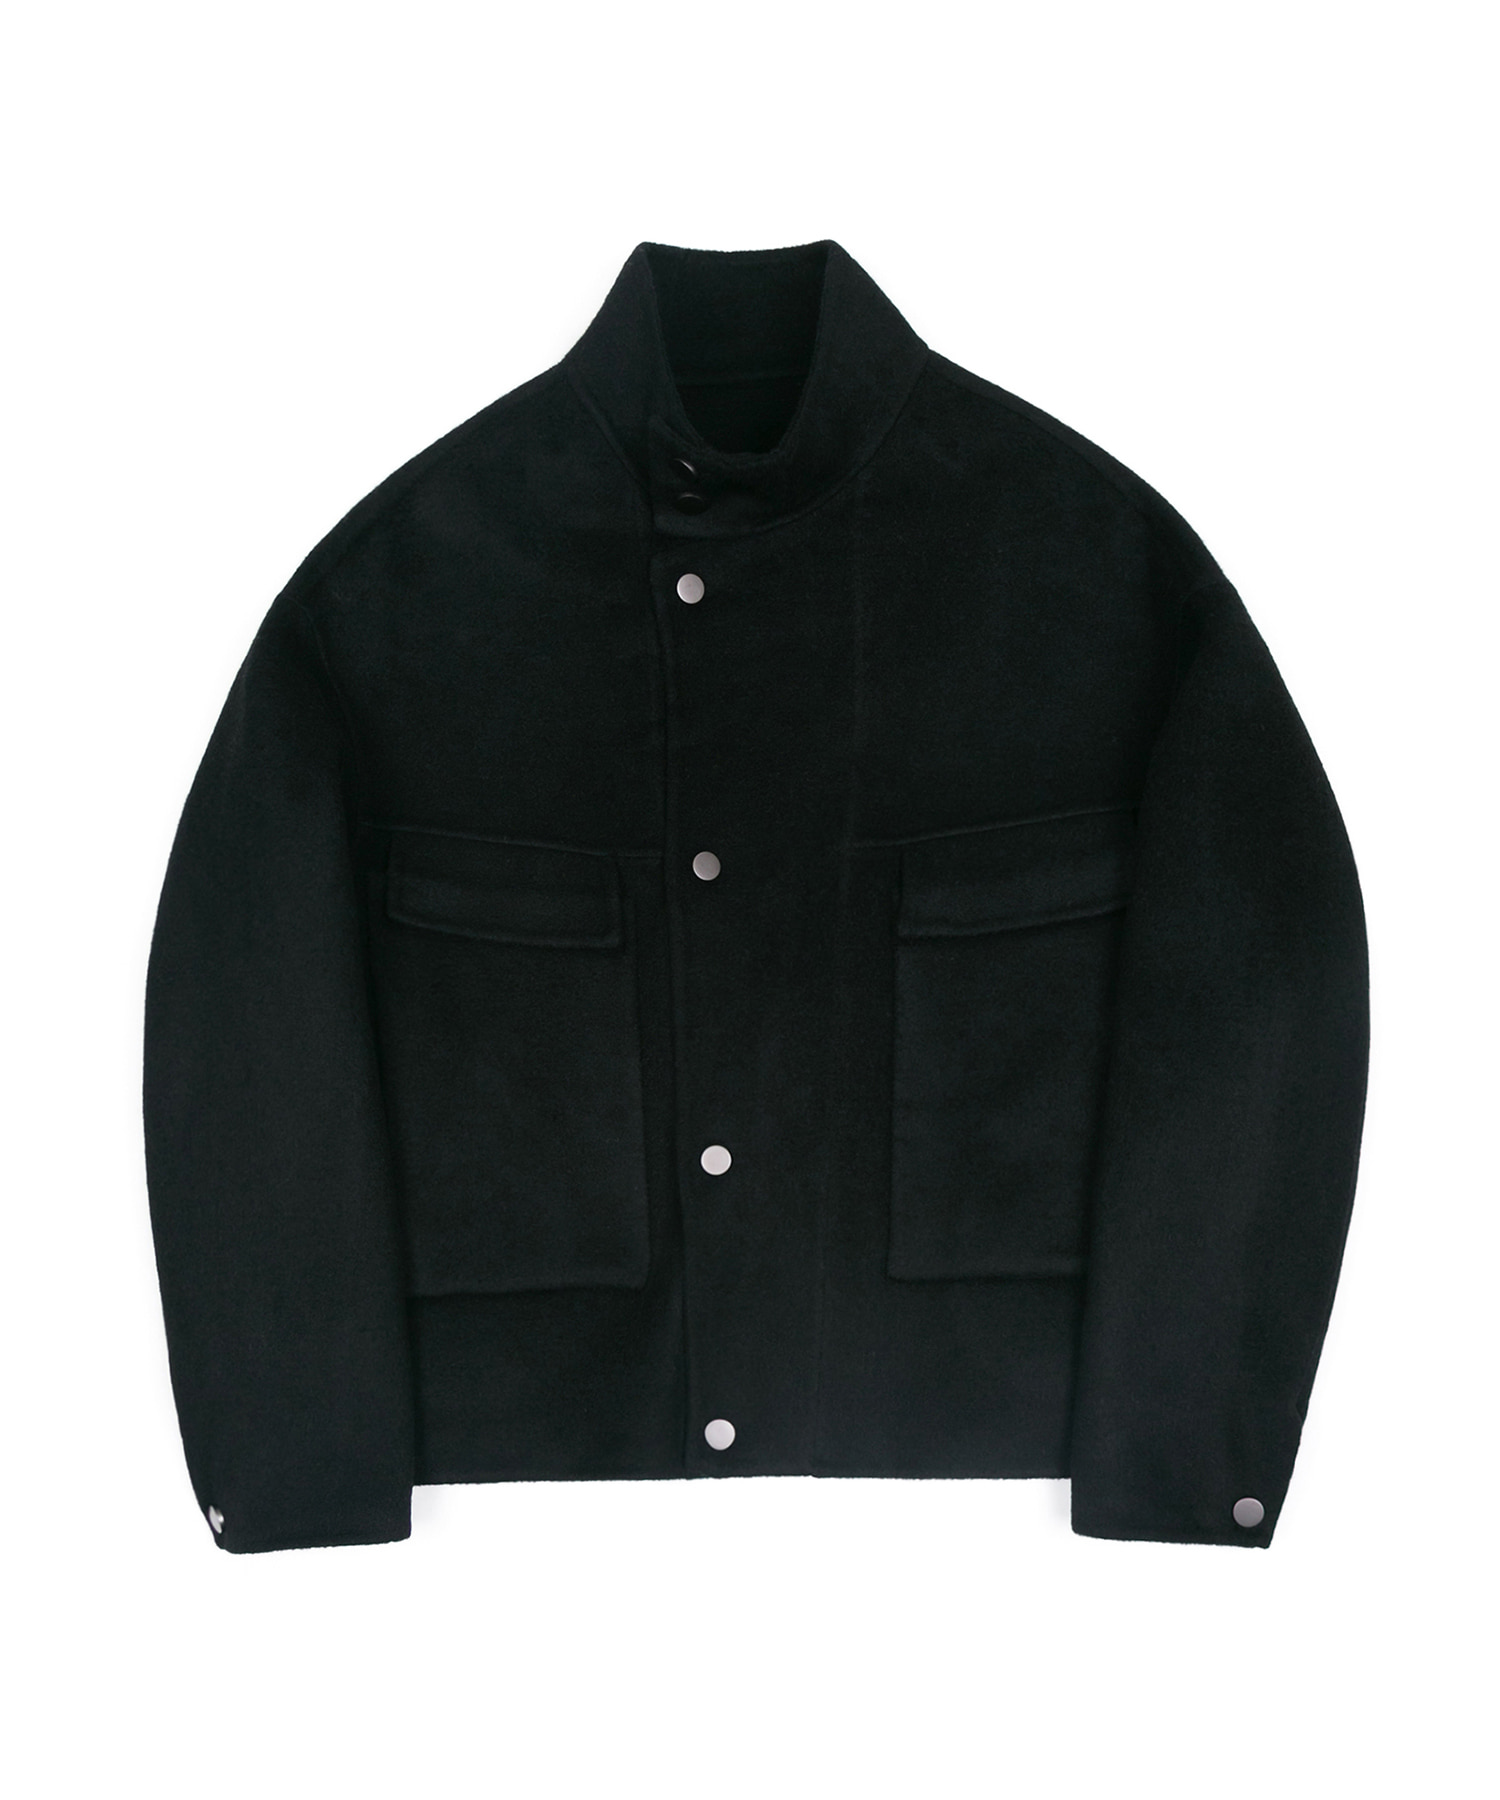 HANDMADE WOOL BREND SHORT RIDER COAT - BLACK